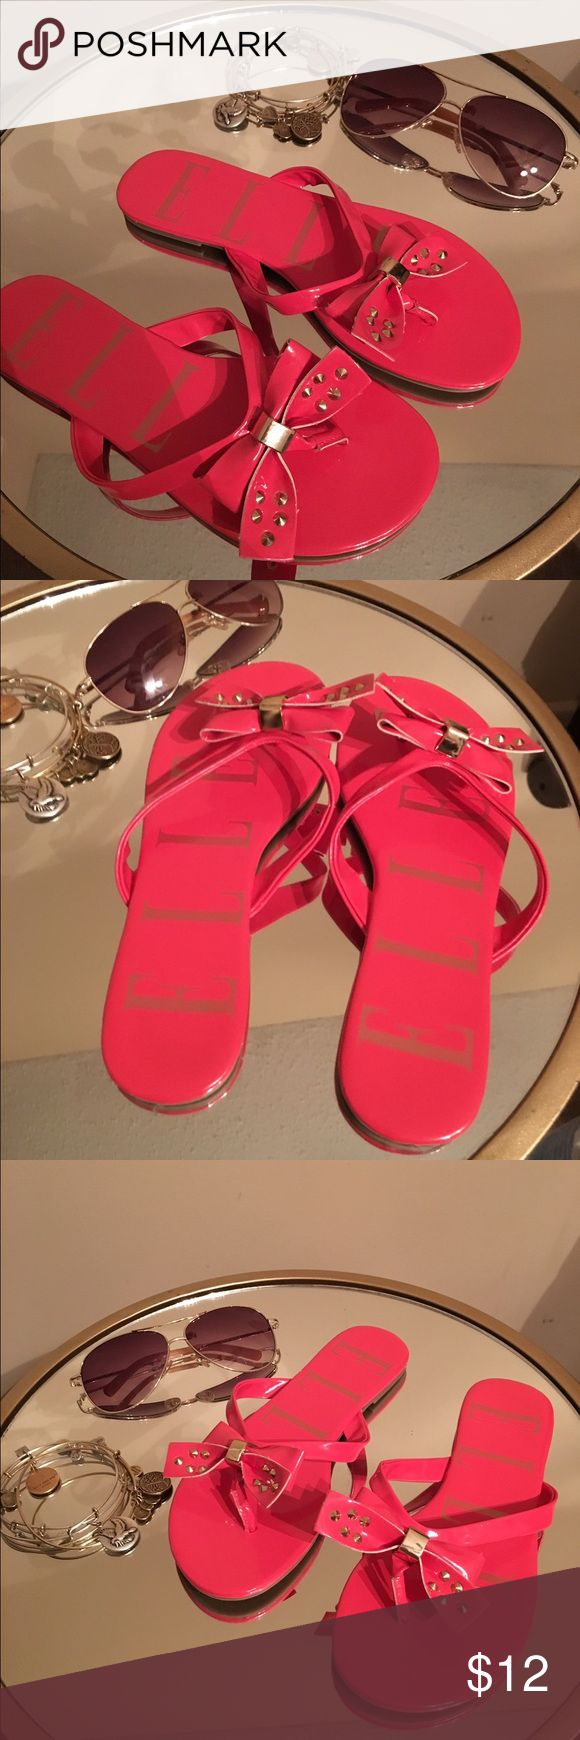 """Elle NWOT Bow Flip Flops Sz 5 So cute for the summer!  Here are a pair of Elle flip flops, new WITHOUT the tag!  Perfect for just about anything!  The bow as a little glam due to the gold studs!  """"Revive"""" this item with your fashion flare! Elle Shoes Sandals"""